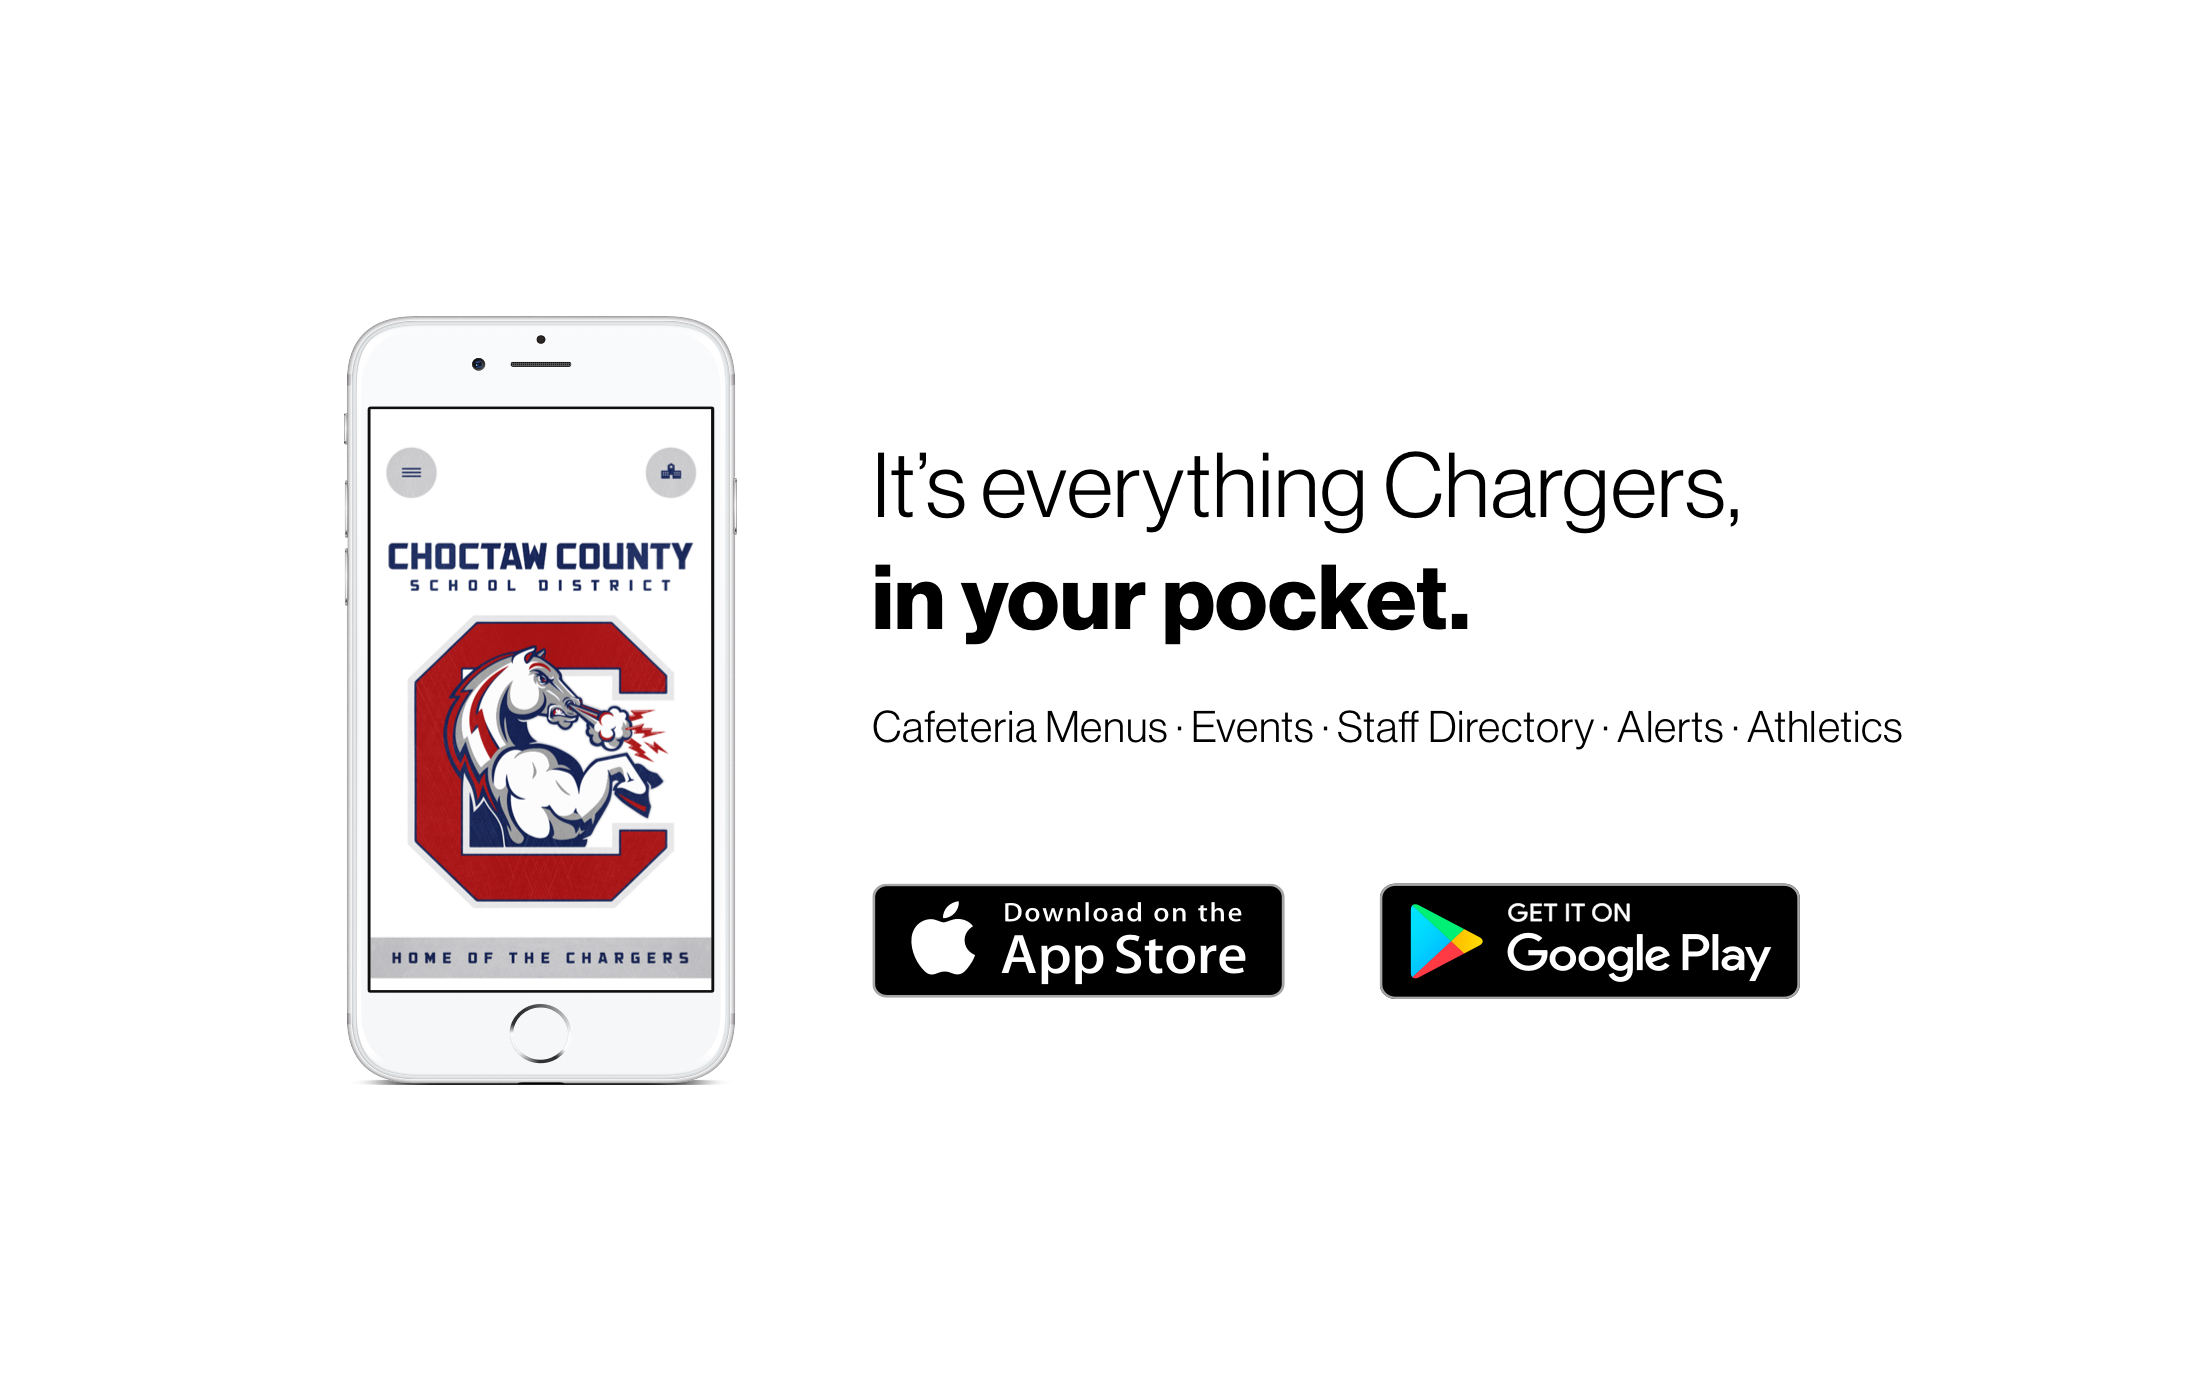 it's everything chargers in your pocket